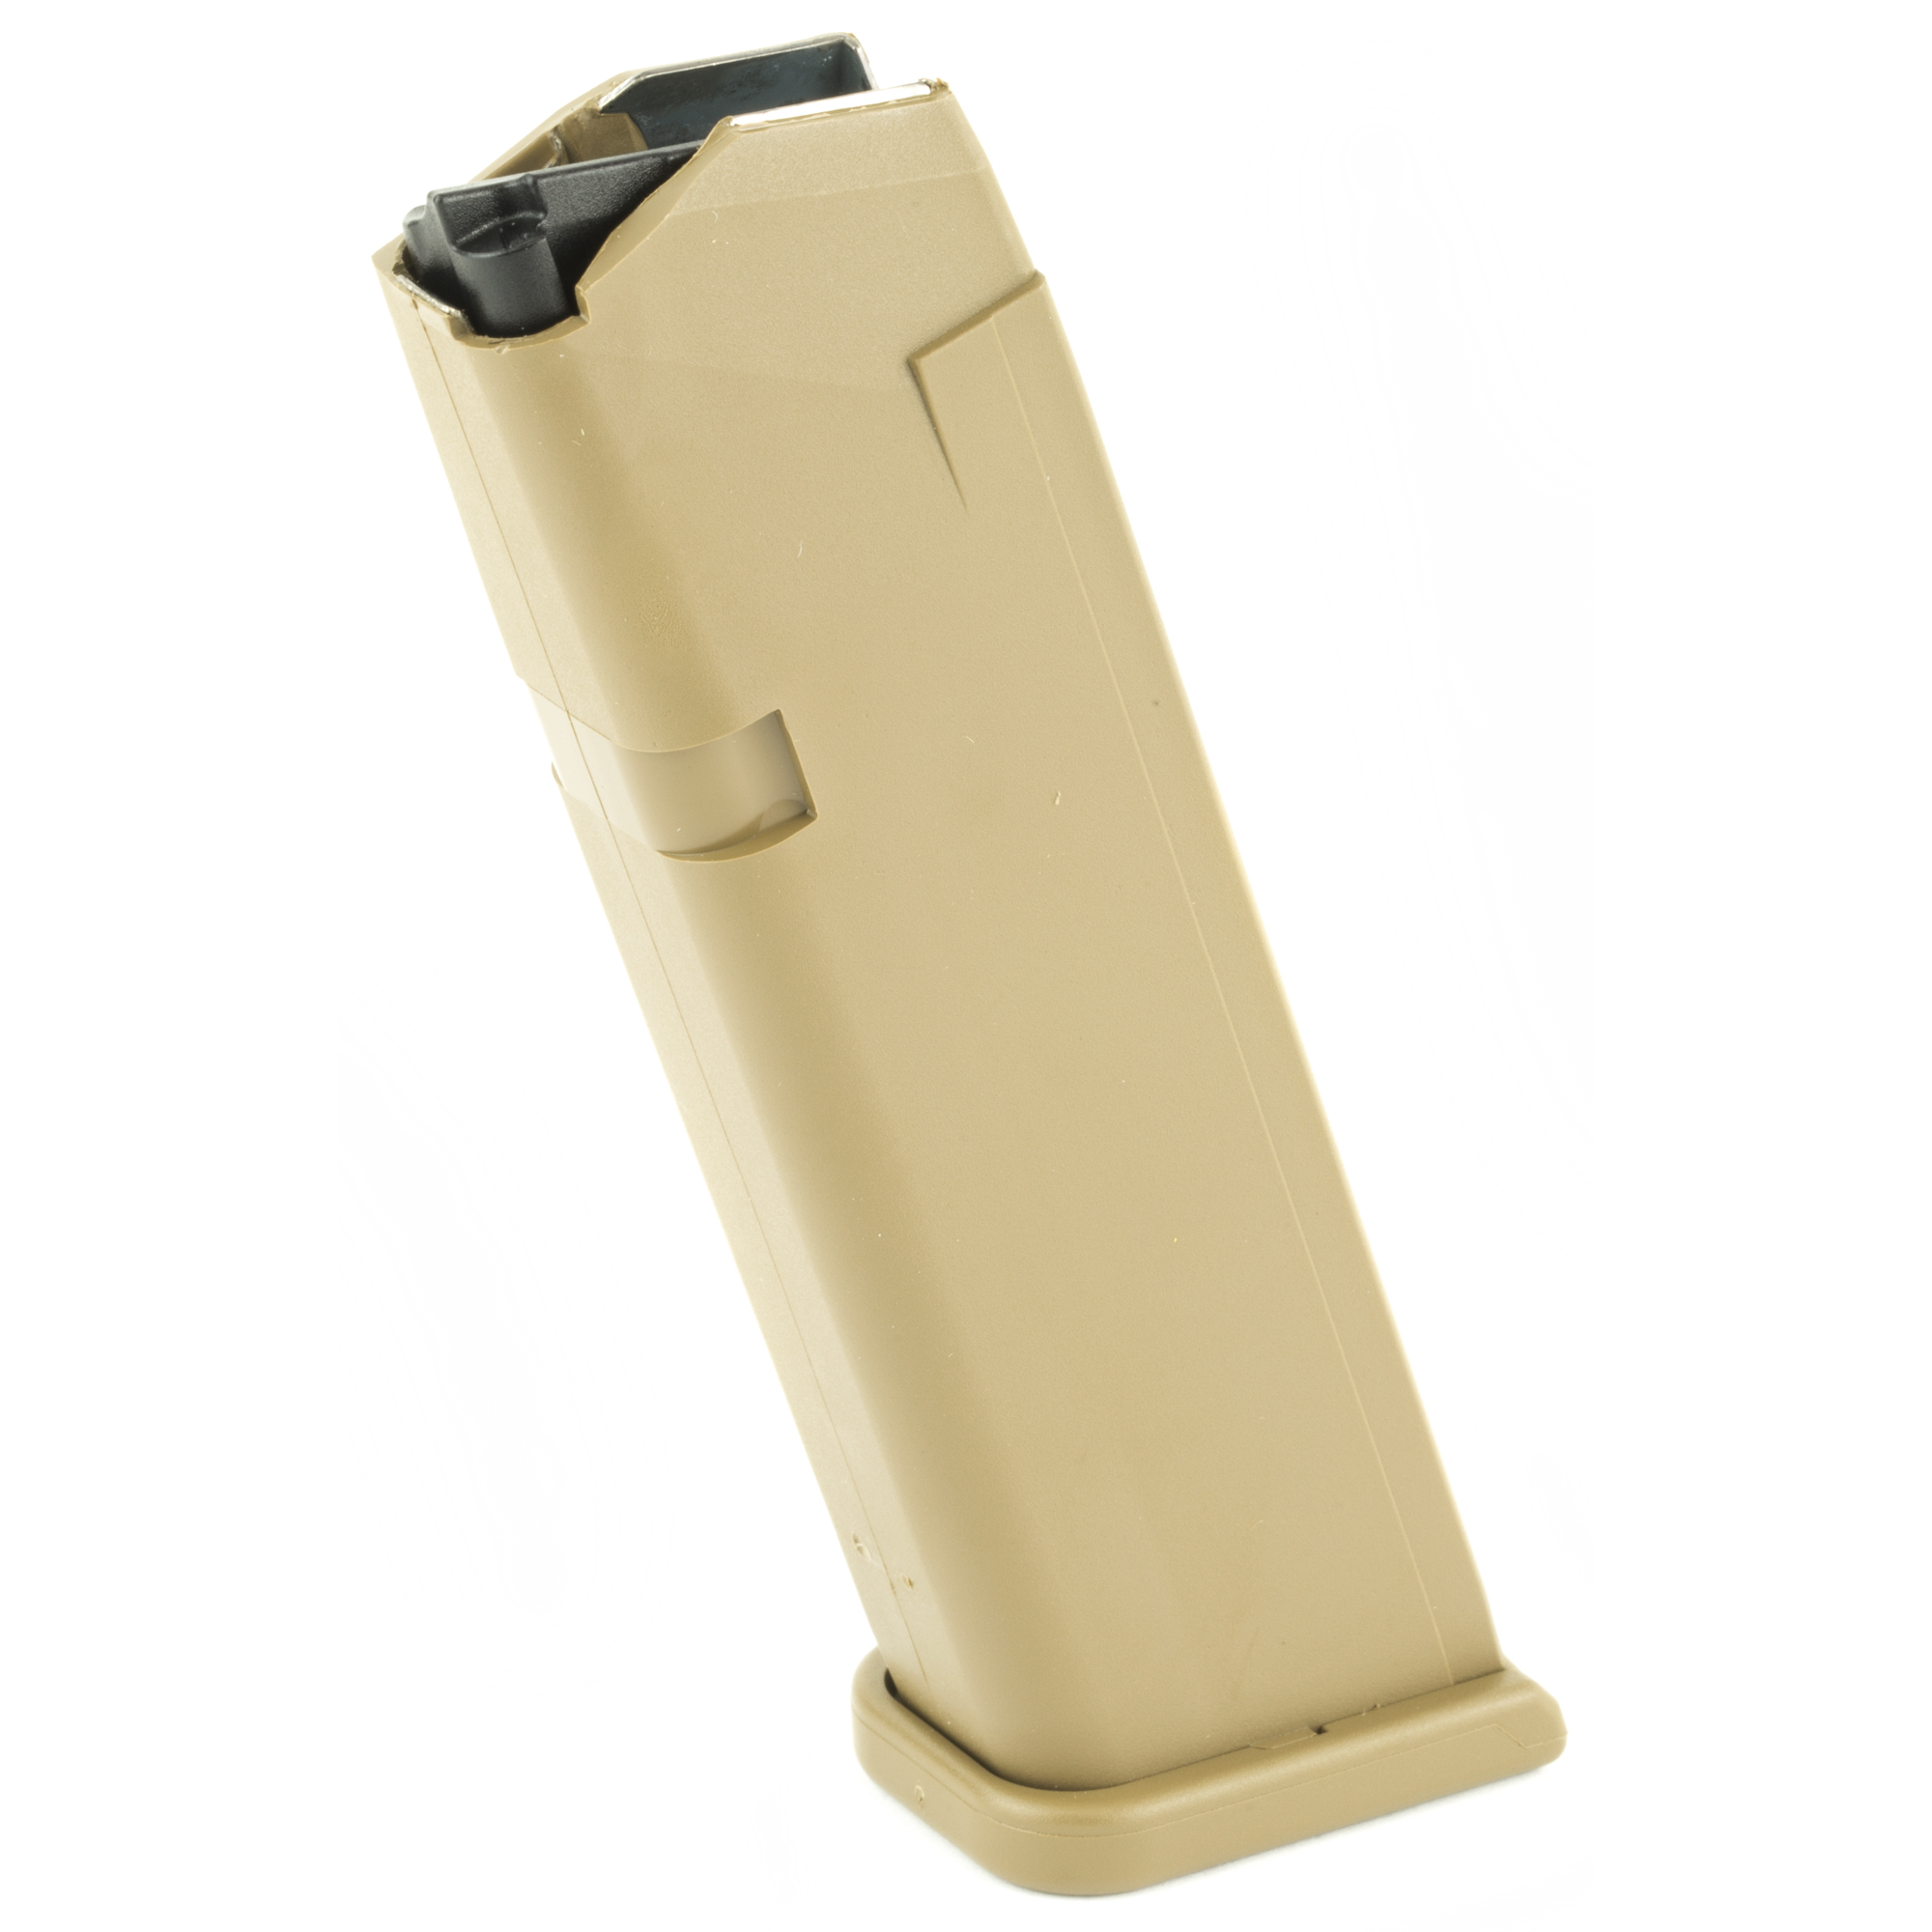 Glock 19x 9mm 17 Round Magazine